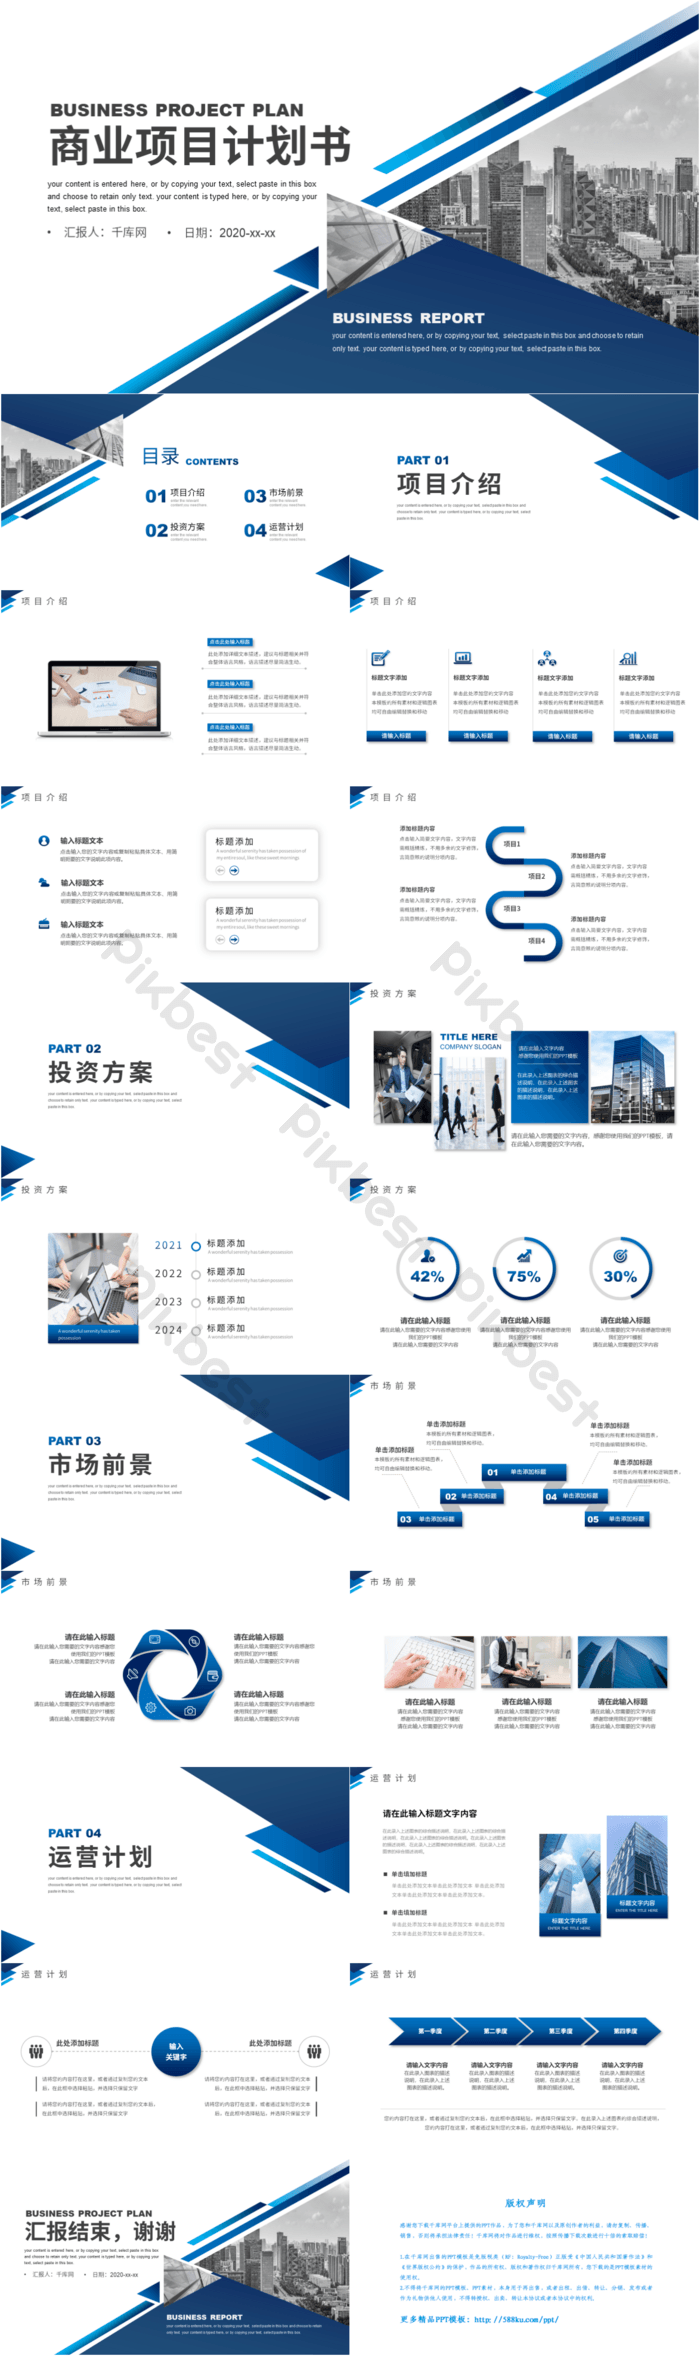 Project Plan Template Powerpoint from img.pikbest.com